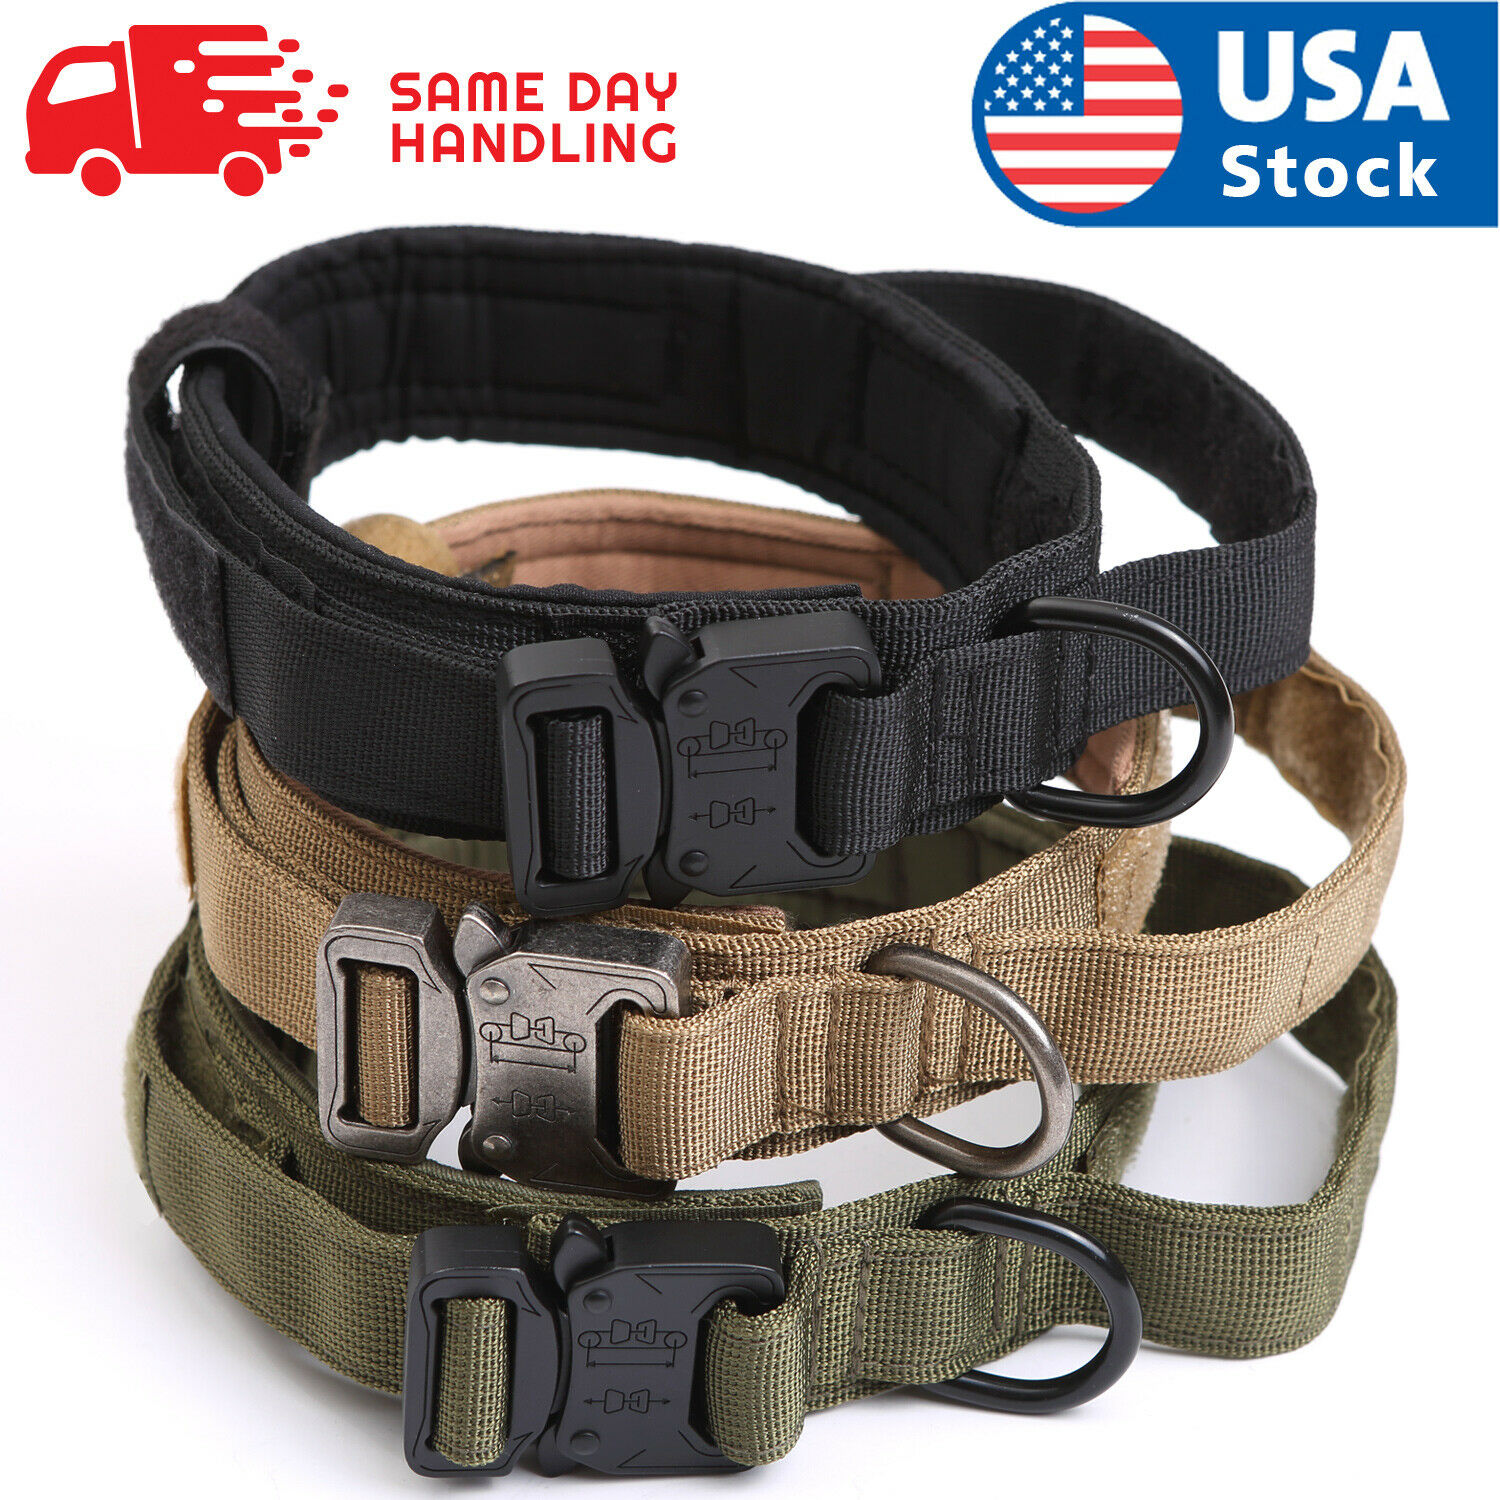 Tactical Military K9 Dog Training Collar with Metal Buckle for L Dog Heavy Duty Collars